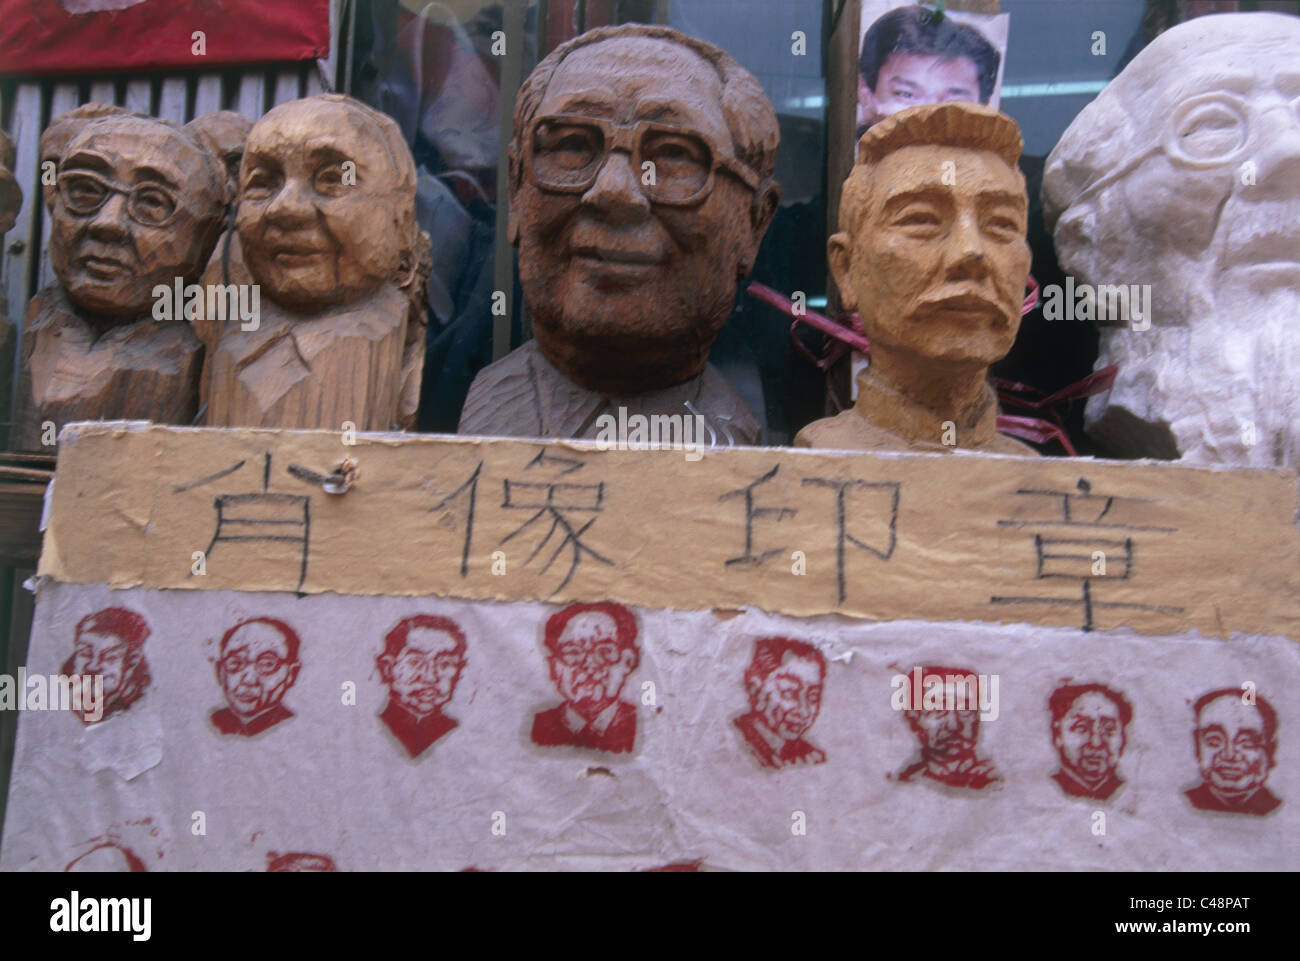 Closeup on a Head sculptures of China's leaders - Stock Image